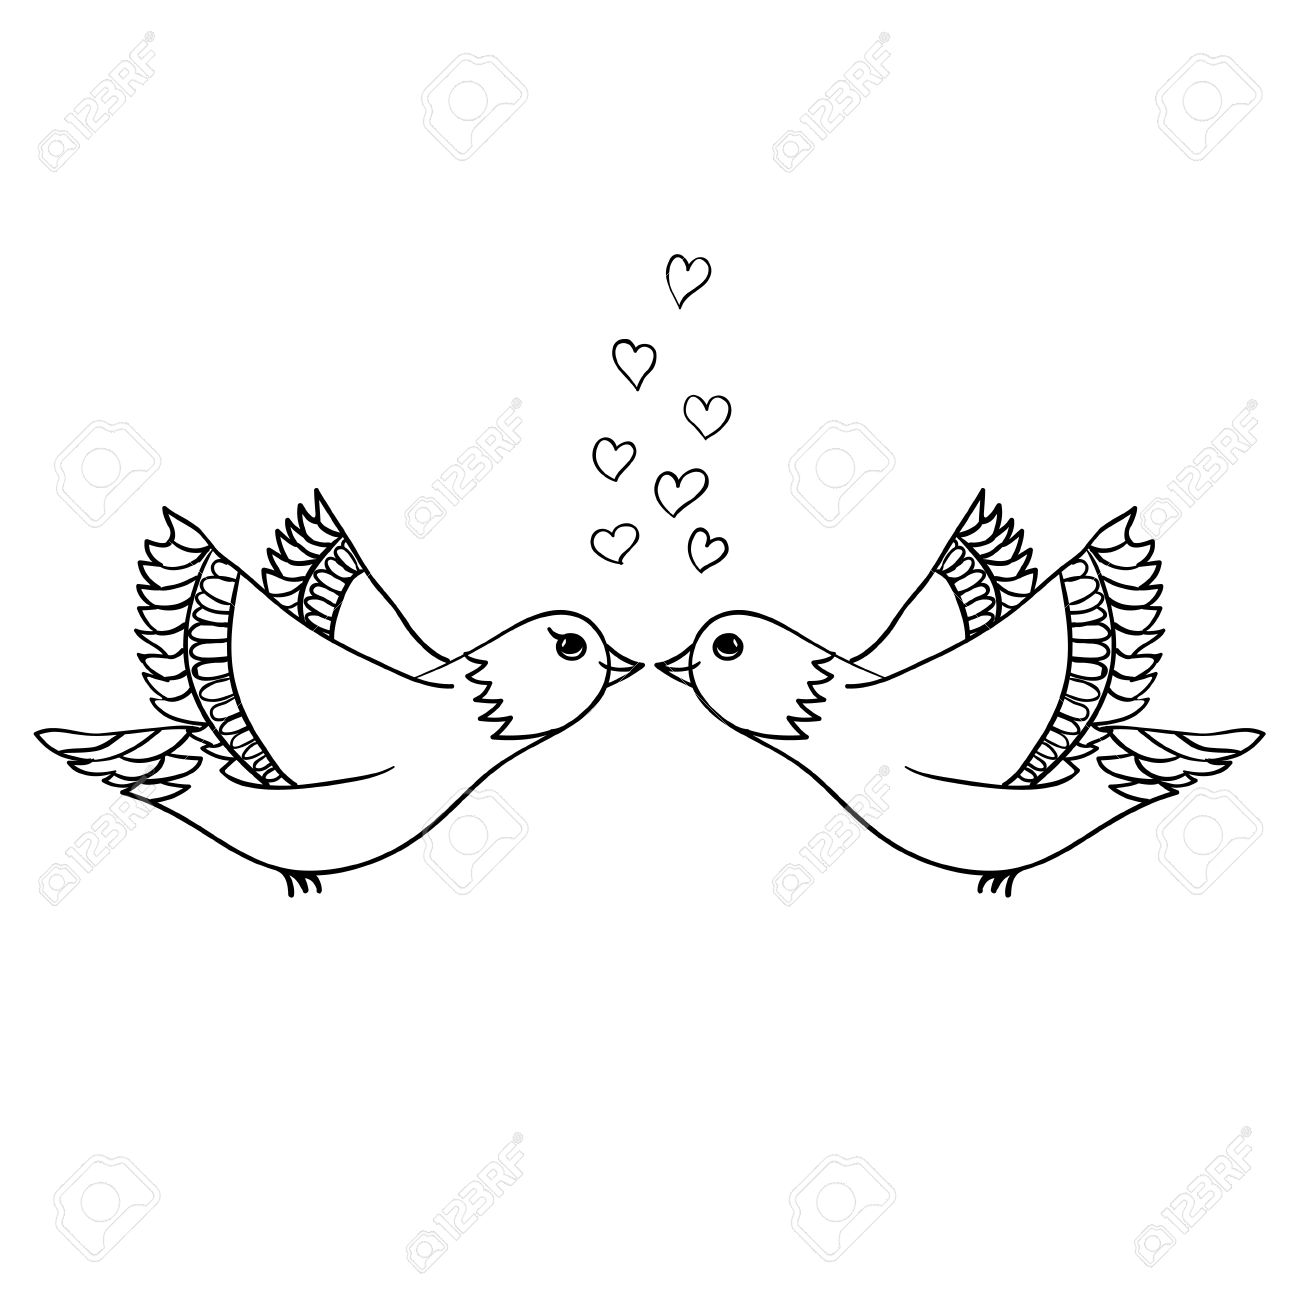 1300x1300 Vector Hand Drawn Couple Of Birds In Love. Black Sketch On White